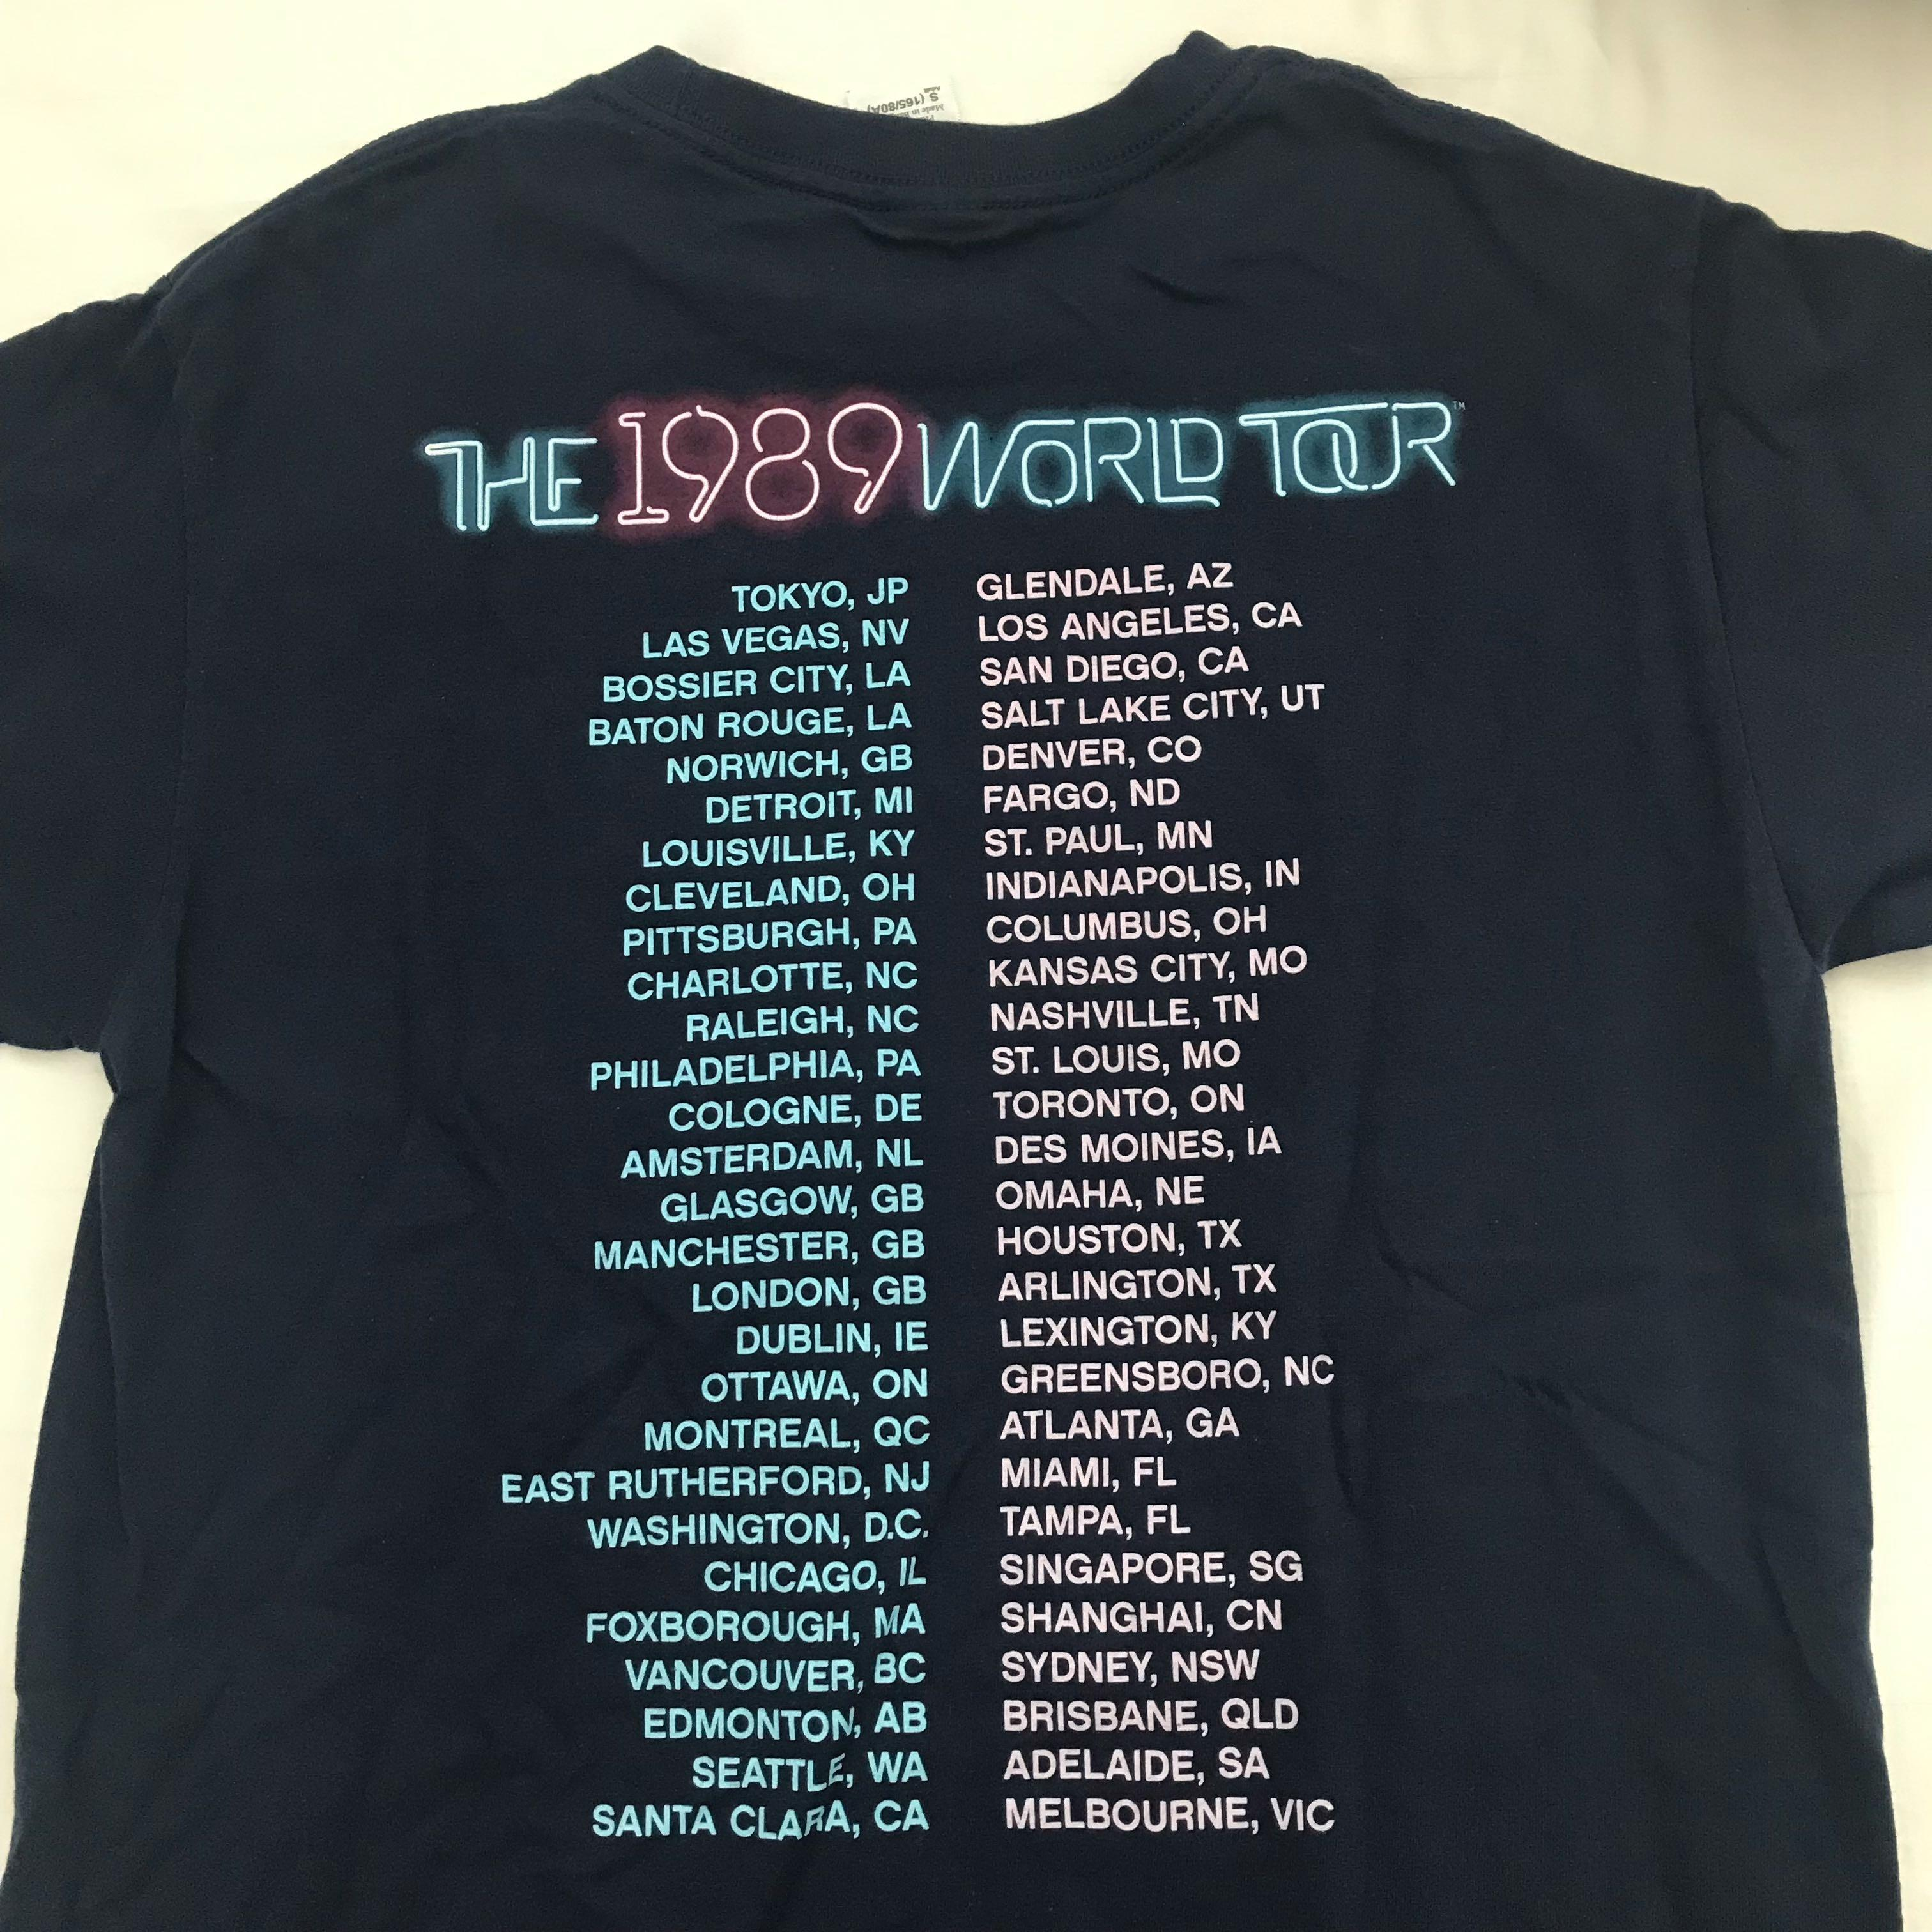 Taylor Swift 1989 World Tour Merch Women S Fashion Clothes Tops On Carousell